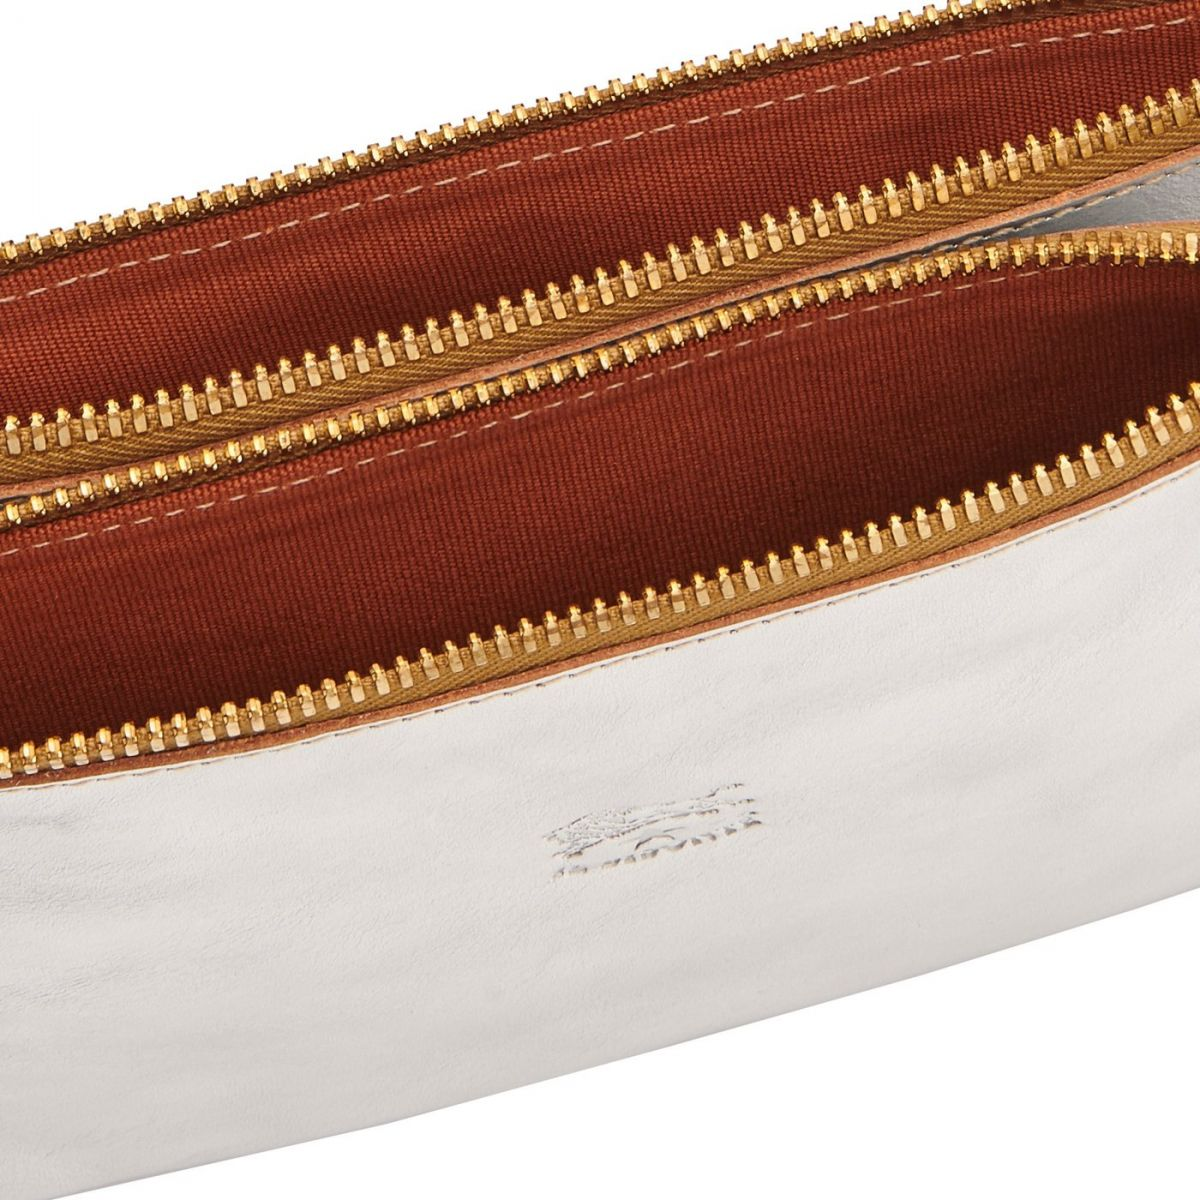 Women's Clutch Bag Talamone in Metallic Leather BCL022 color Metallic Silver | Details